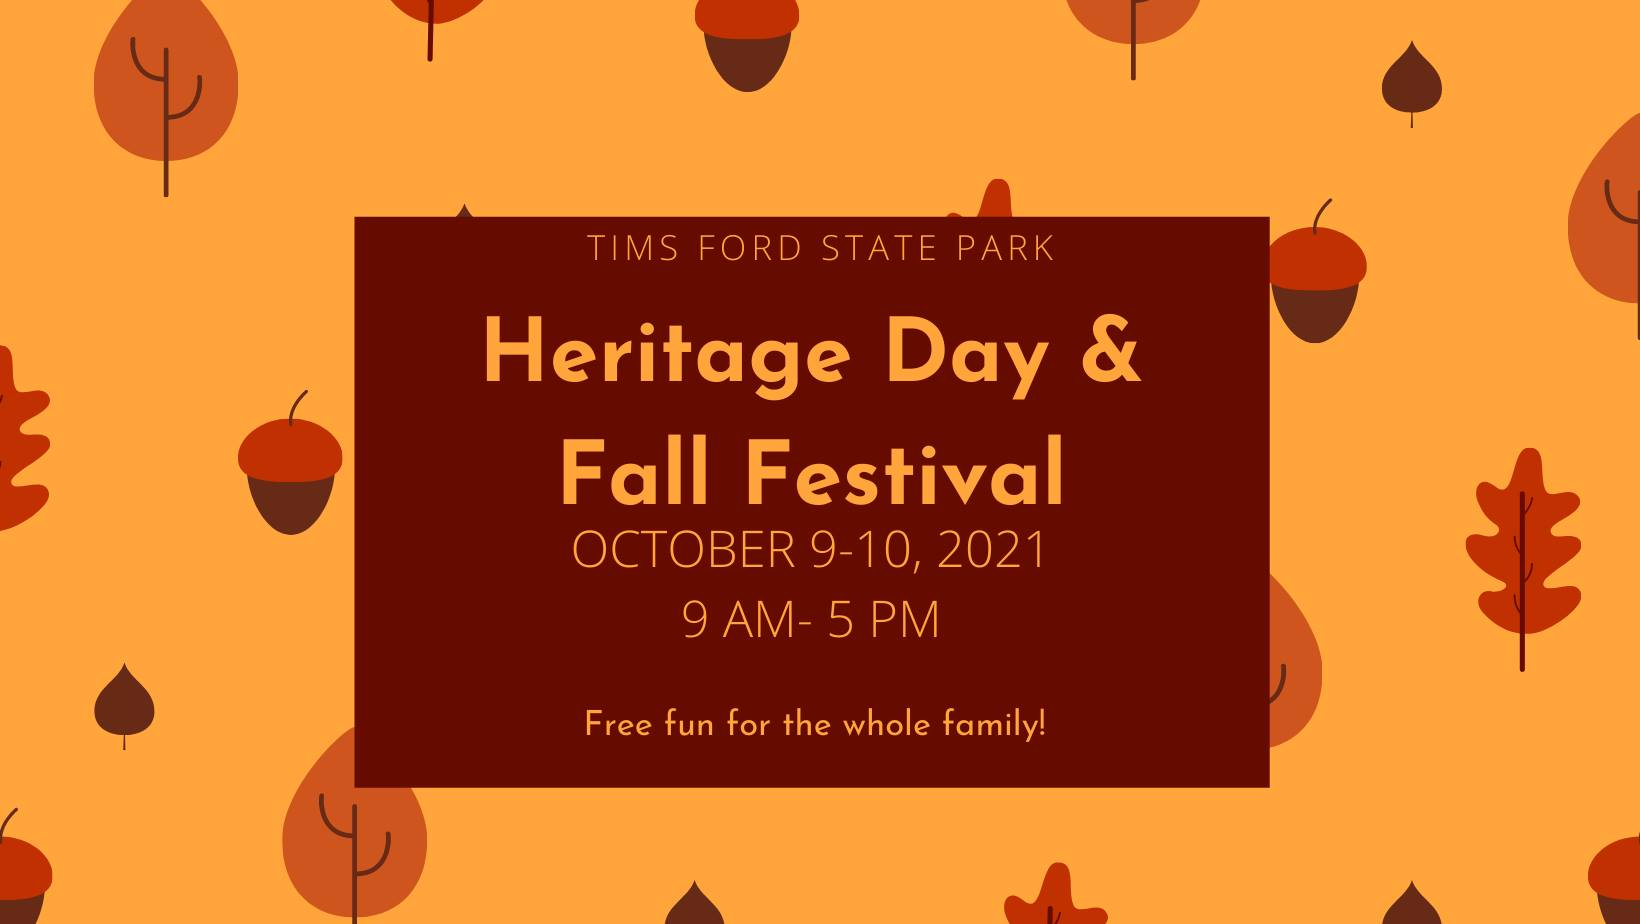 Tims Ford State Park Heritage Day and Fall Festival